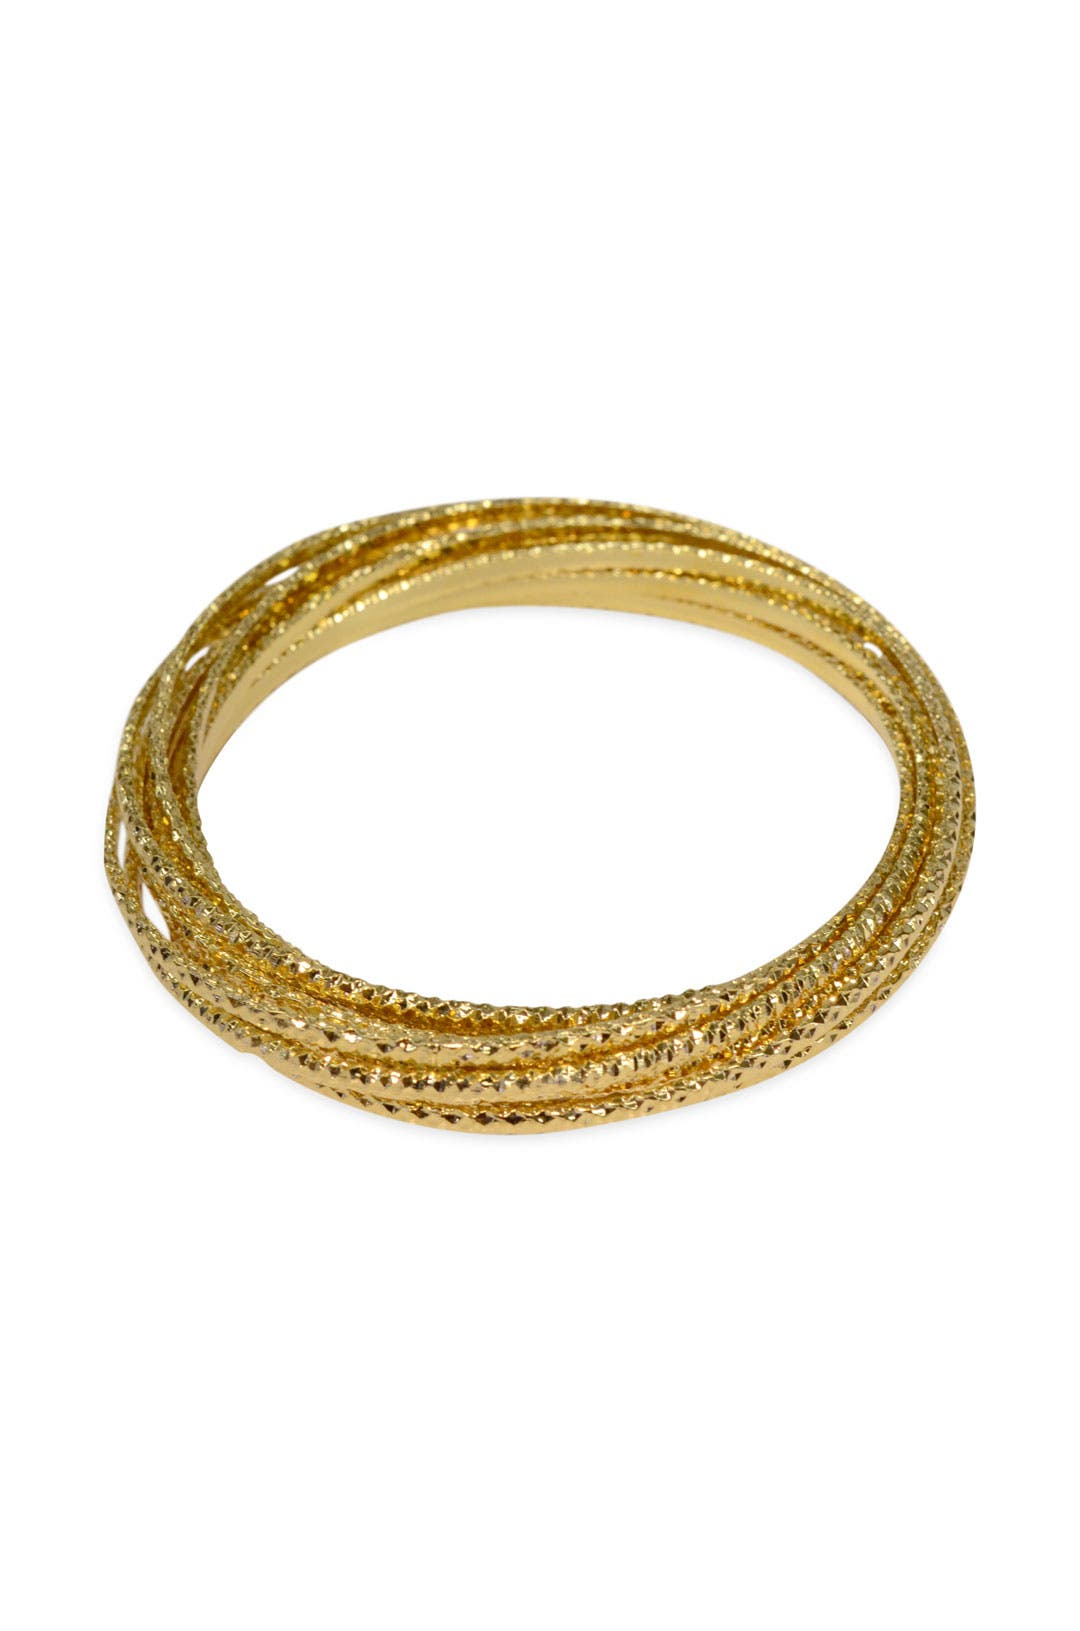 Gold Bangle Set by Cinder & Charm